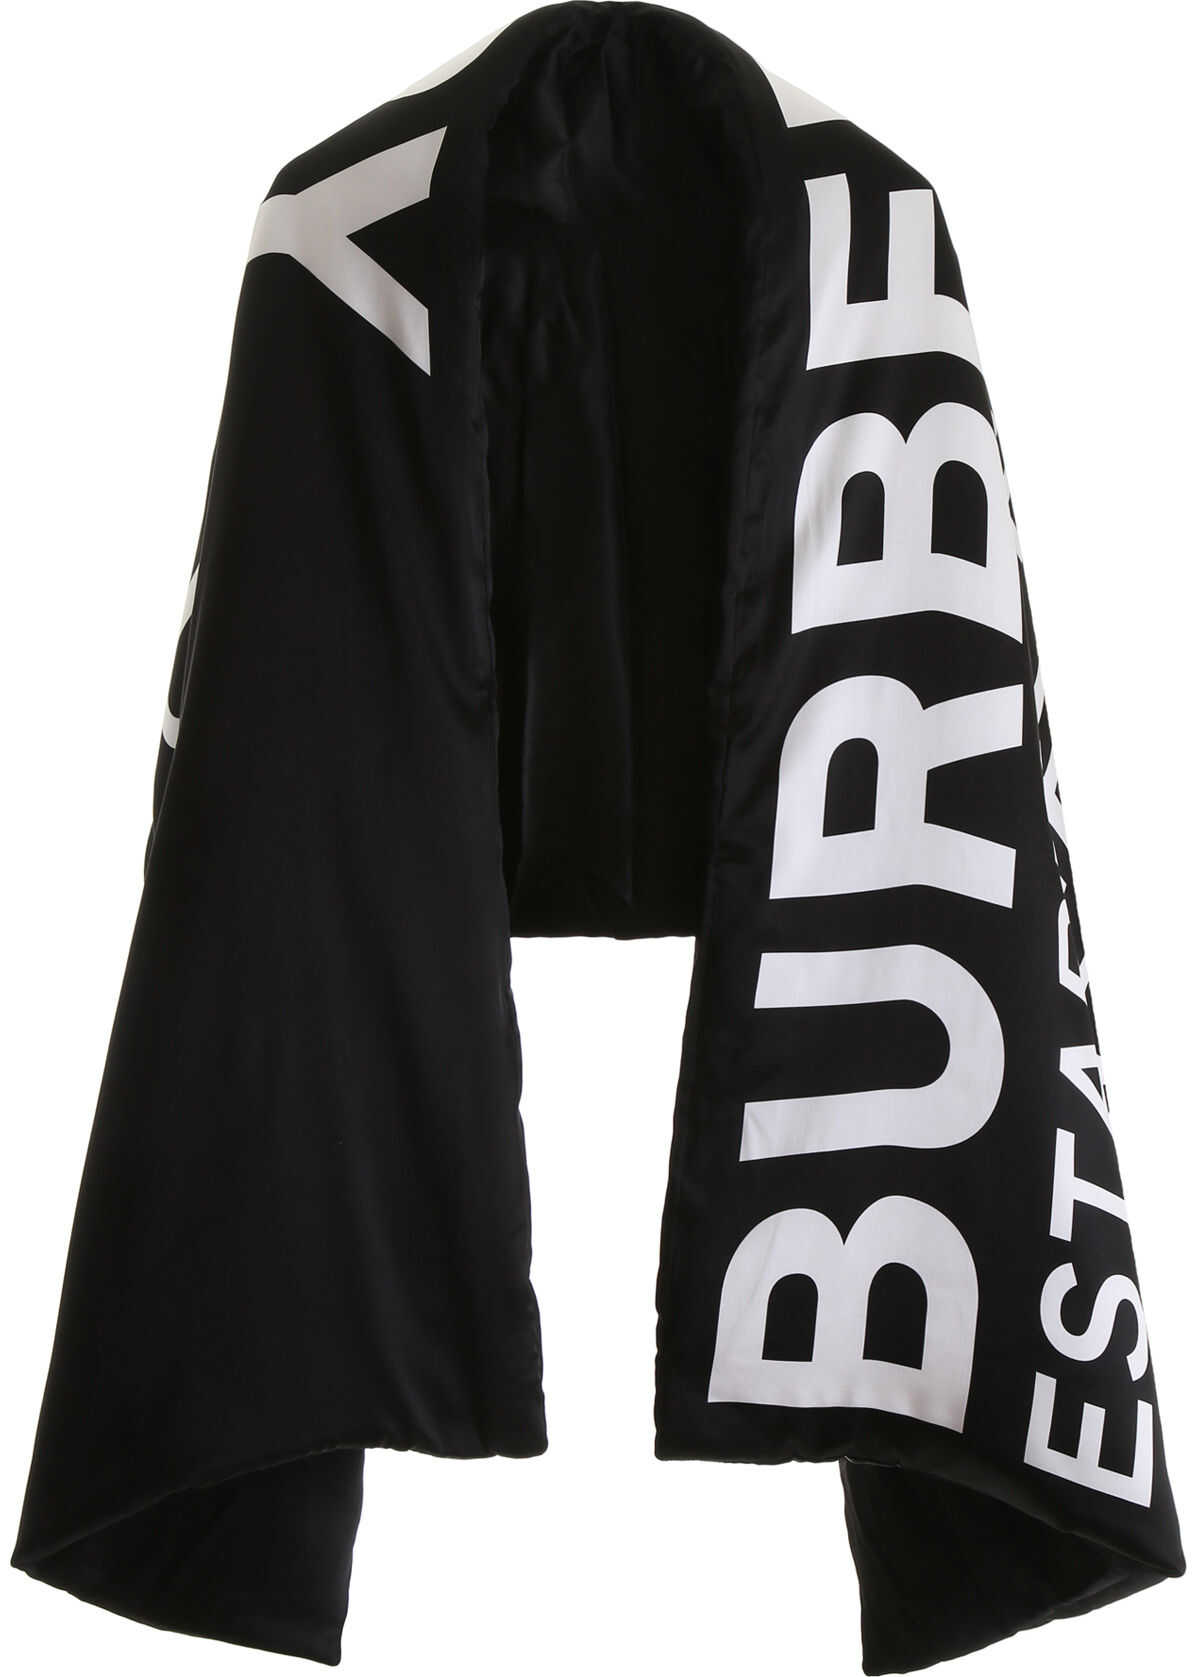 Burberry Horseferry Padded Scarf BLACK WHITE